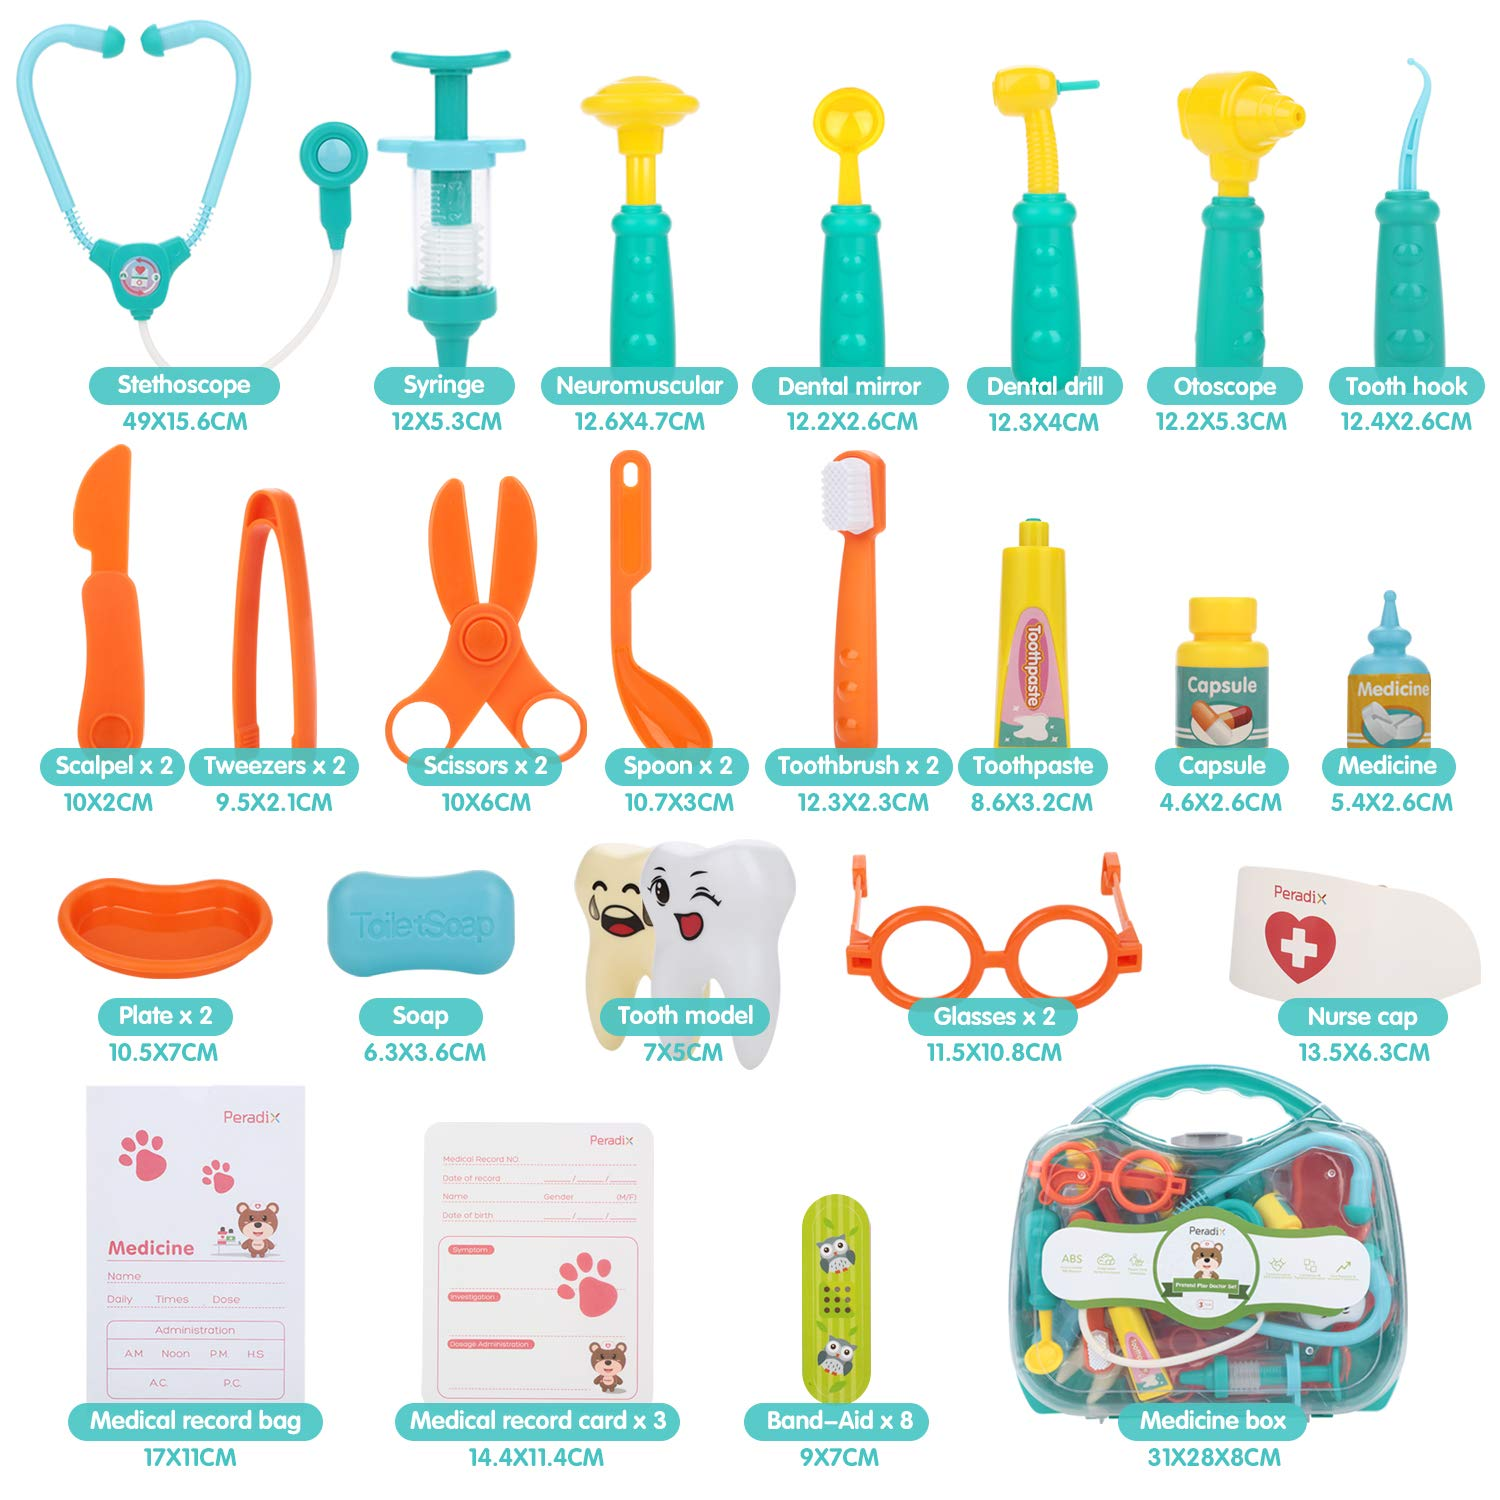 Peradix Medical Toys Doctor Kit 41 PCS for Kids Childrens With Electronic Stethoscope Pretend Doctor Nurse role playset Pack in Durable Gift CarryCase